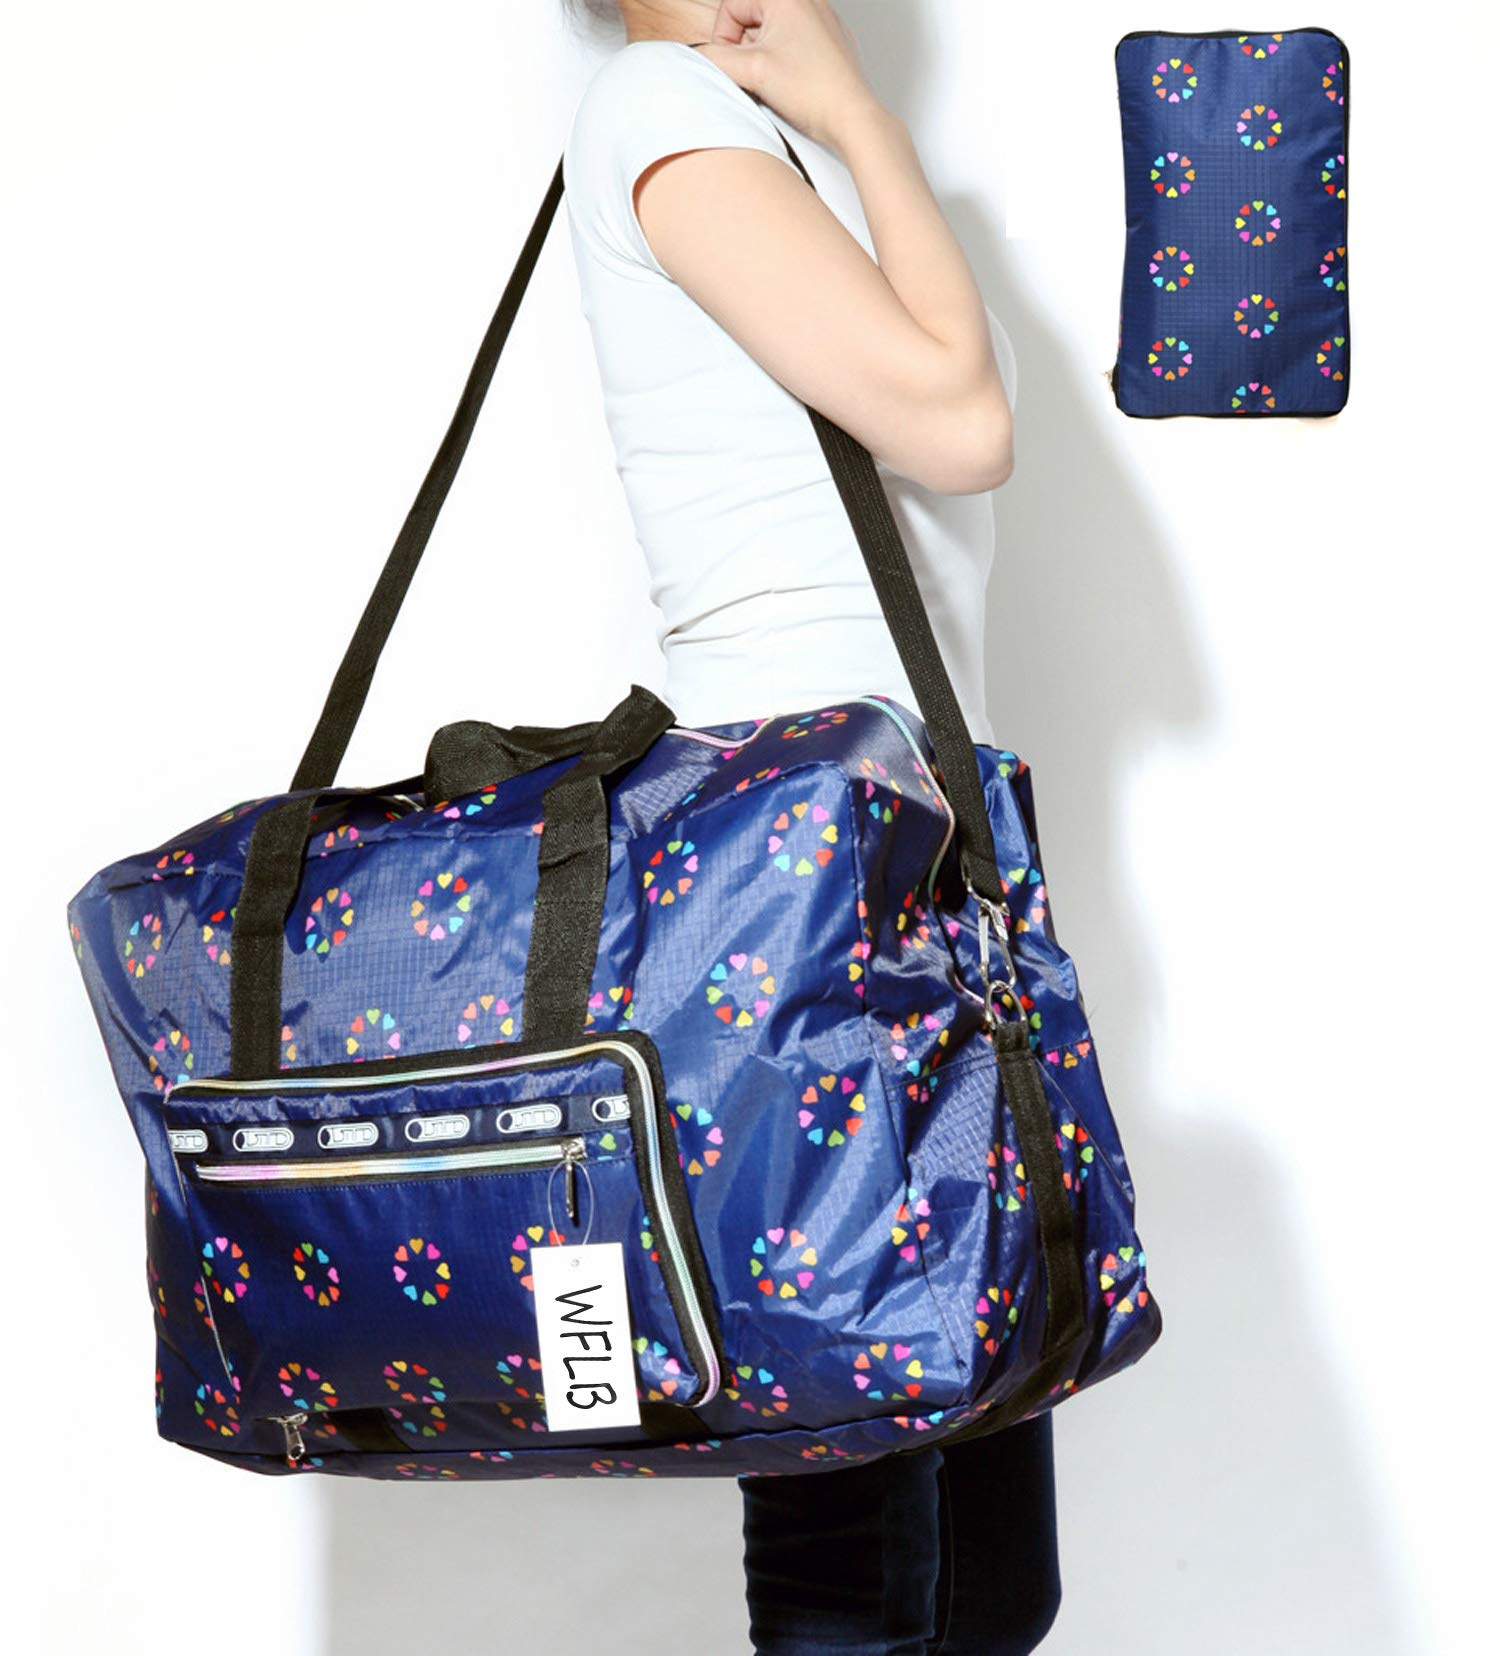 Travel Duffel Bag Foldable Large Travel Bag Weekend Bag Checked Bag Luggage Tote 18 Style 21.6IN x 9.8IN x 13.7IN (blue heart)